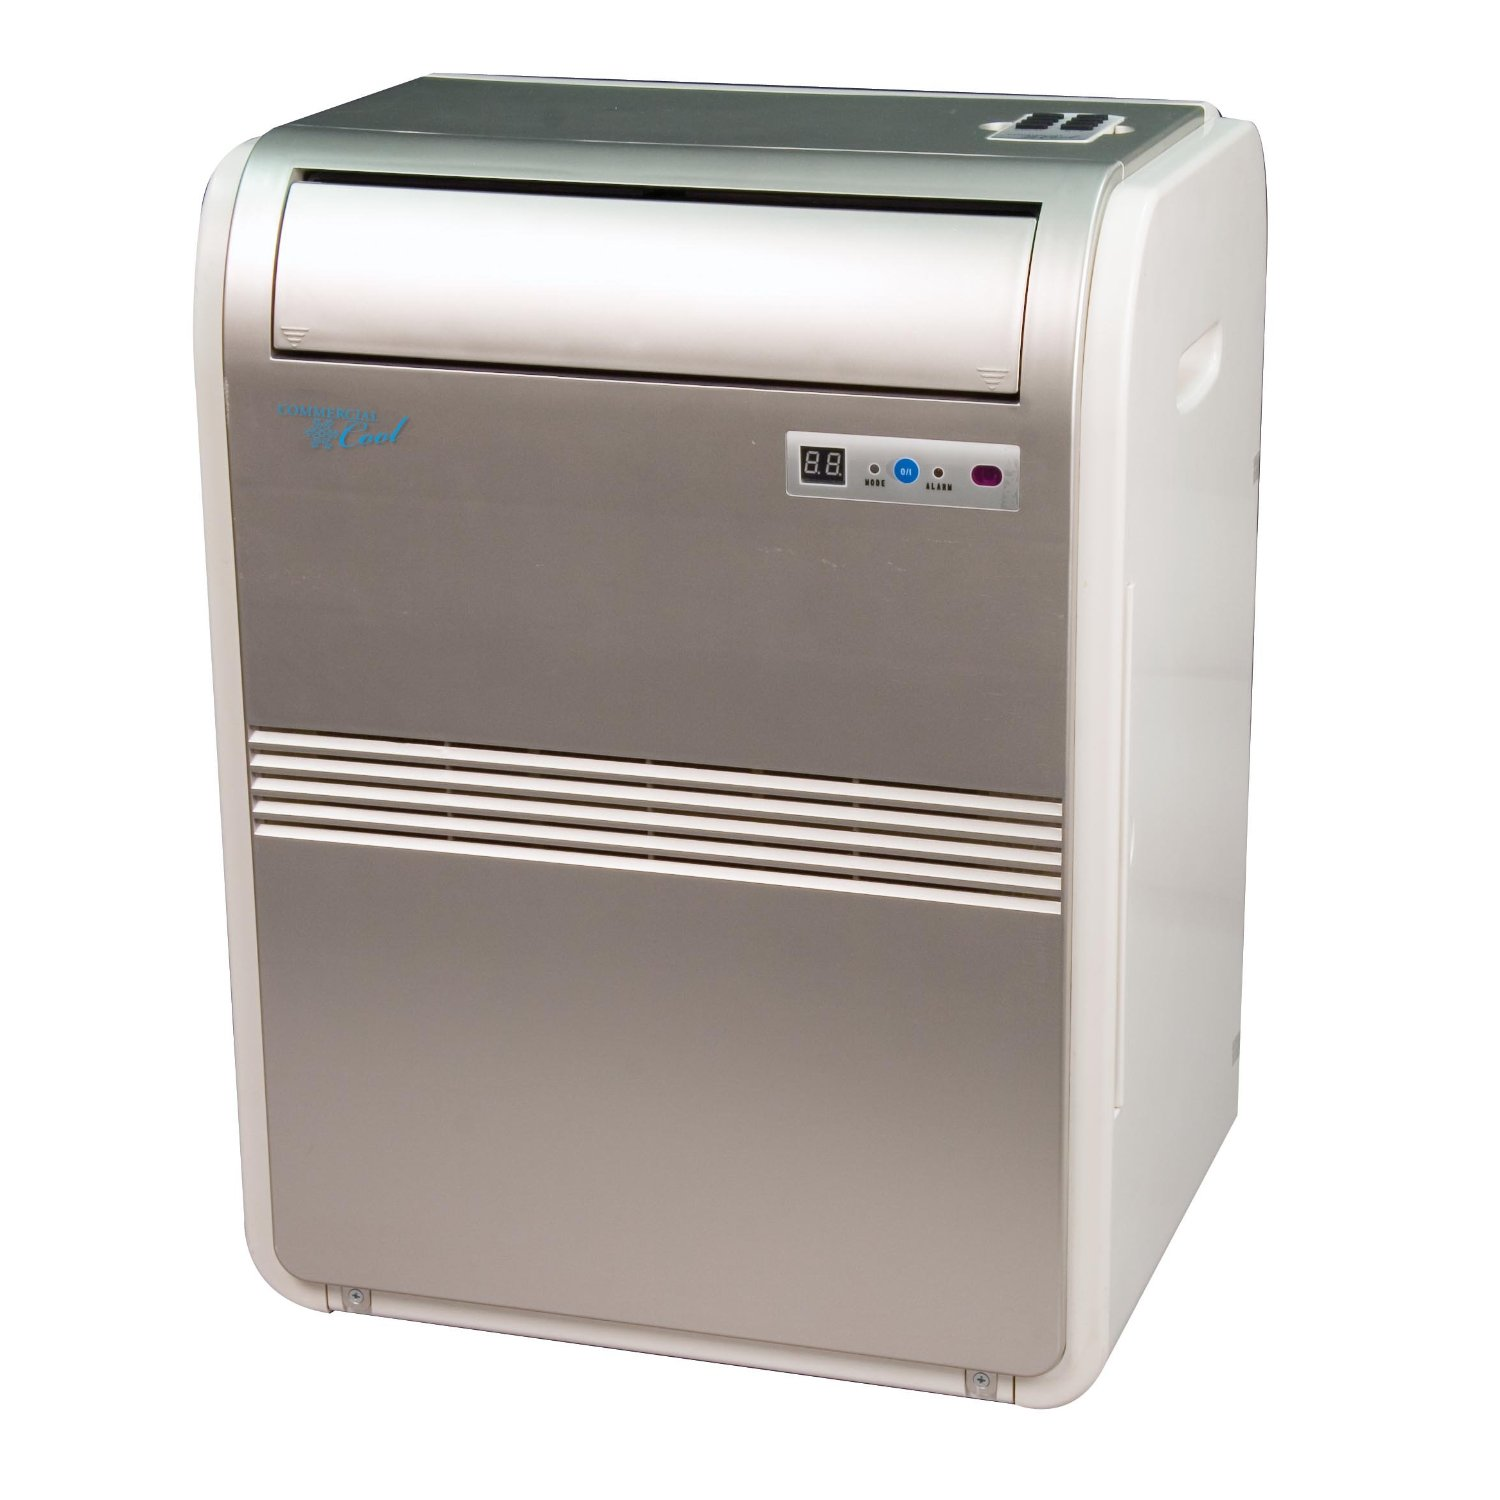 Haier Portable Air Conditioner, 8000 BTUs, CPRB08